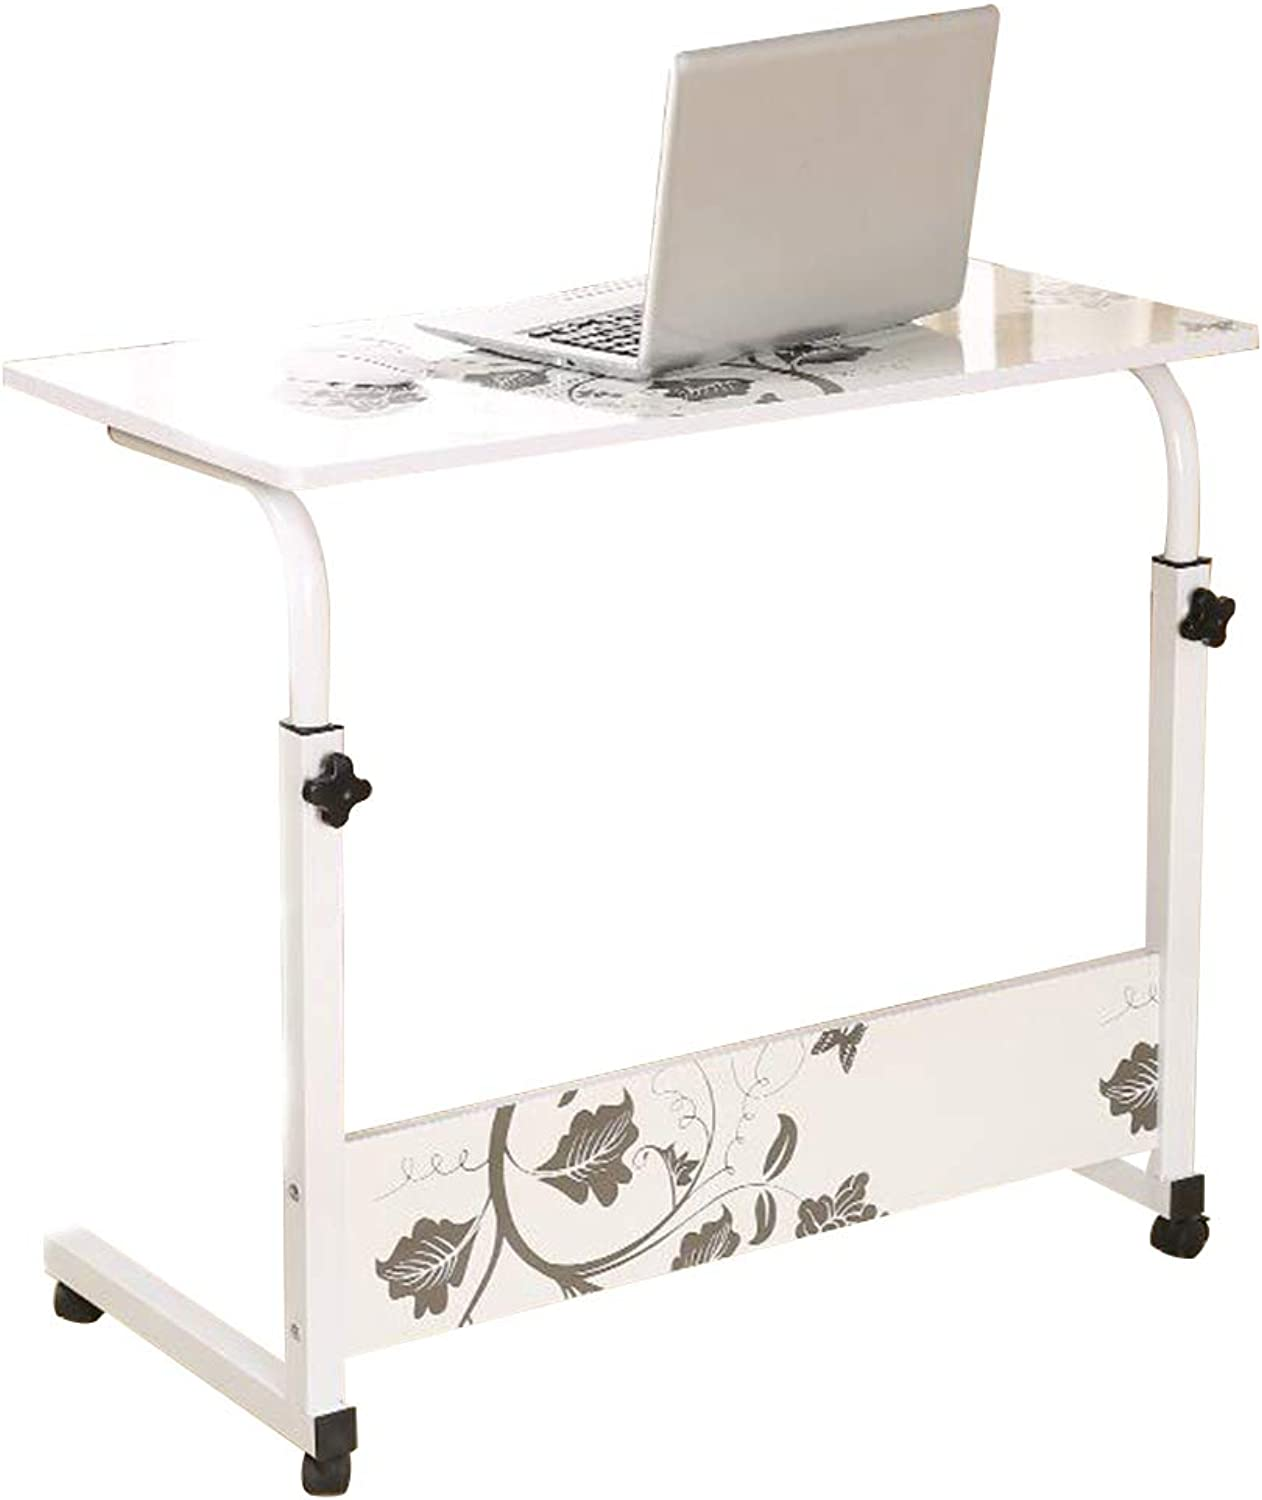 Coffee Table Mobile Telescopic Computer Desk, Type C Lifting Height Adjustable Household Dining Table Multifunction Study Table Writing Desk, 3 Sizes (Size   60  40 cm)